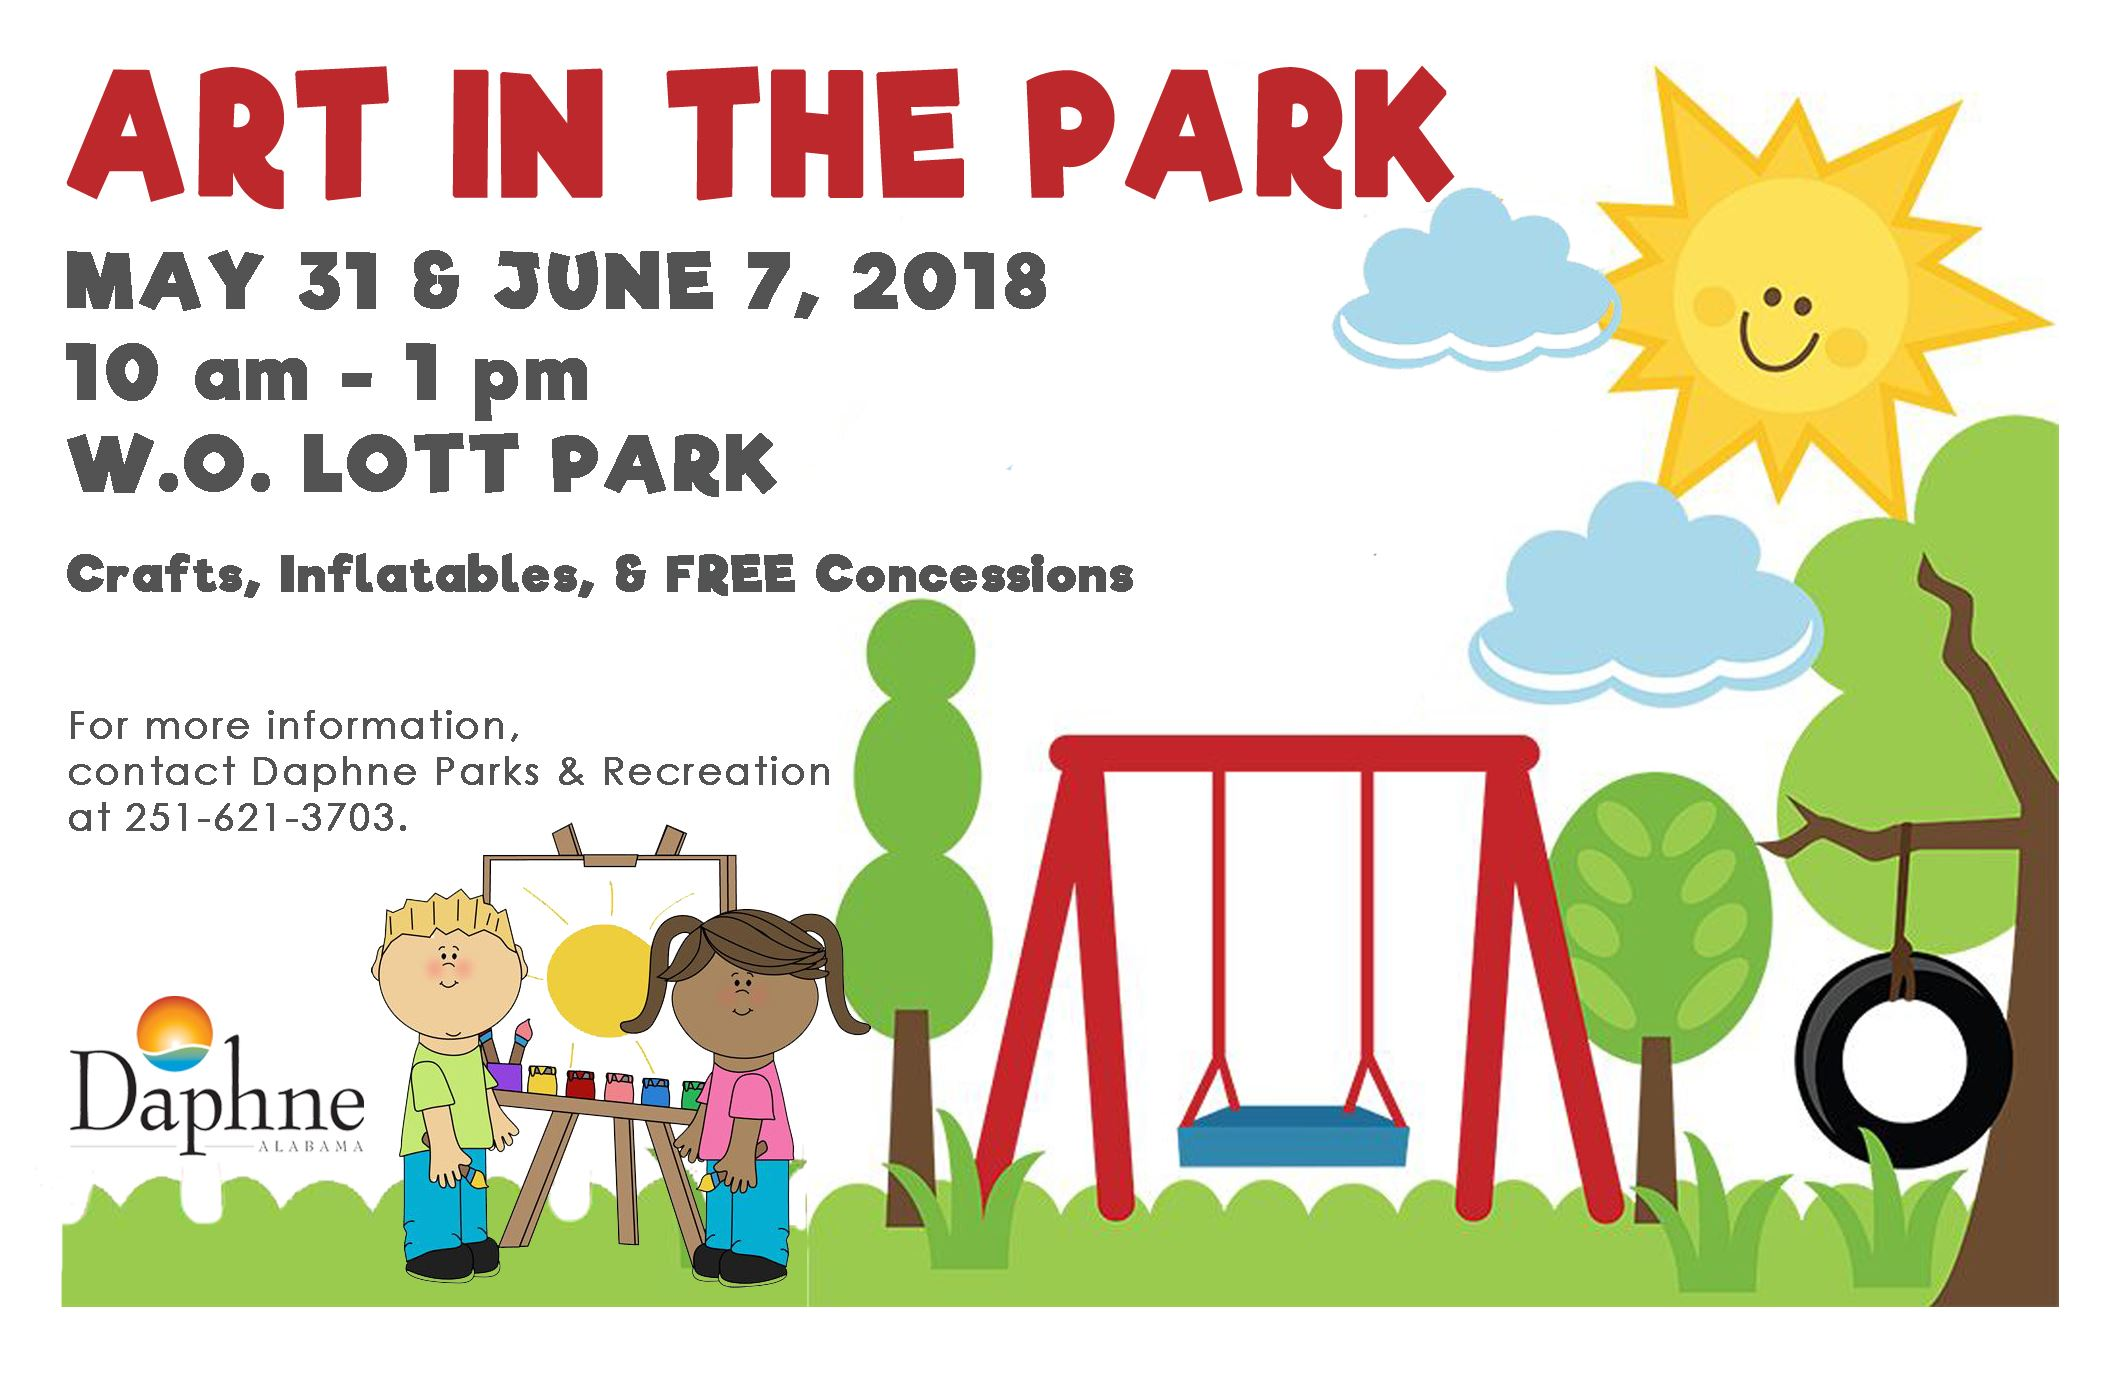 Art in the Park 2018